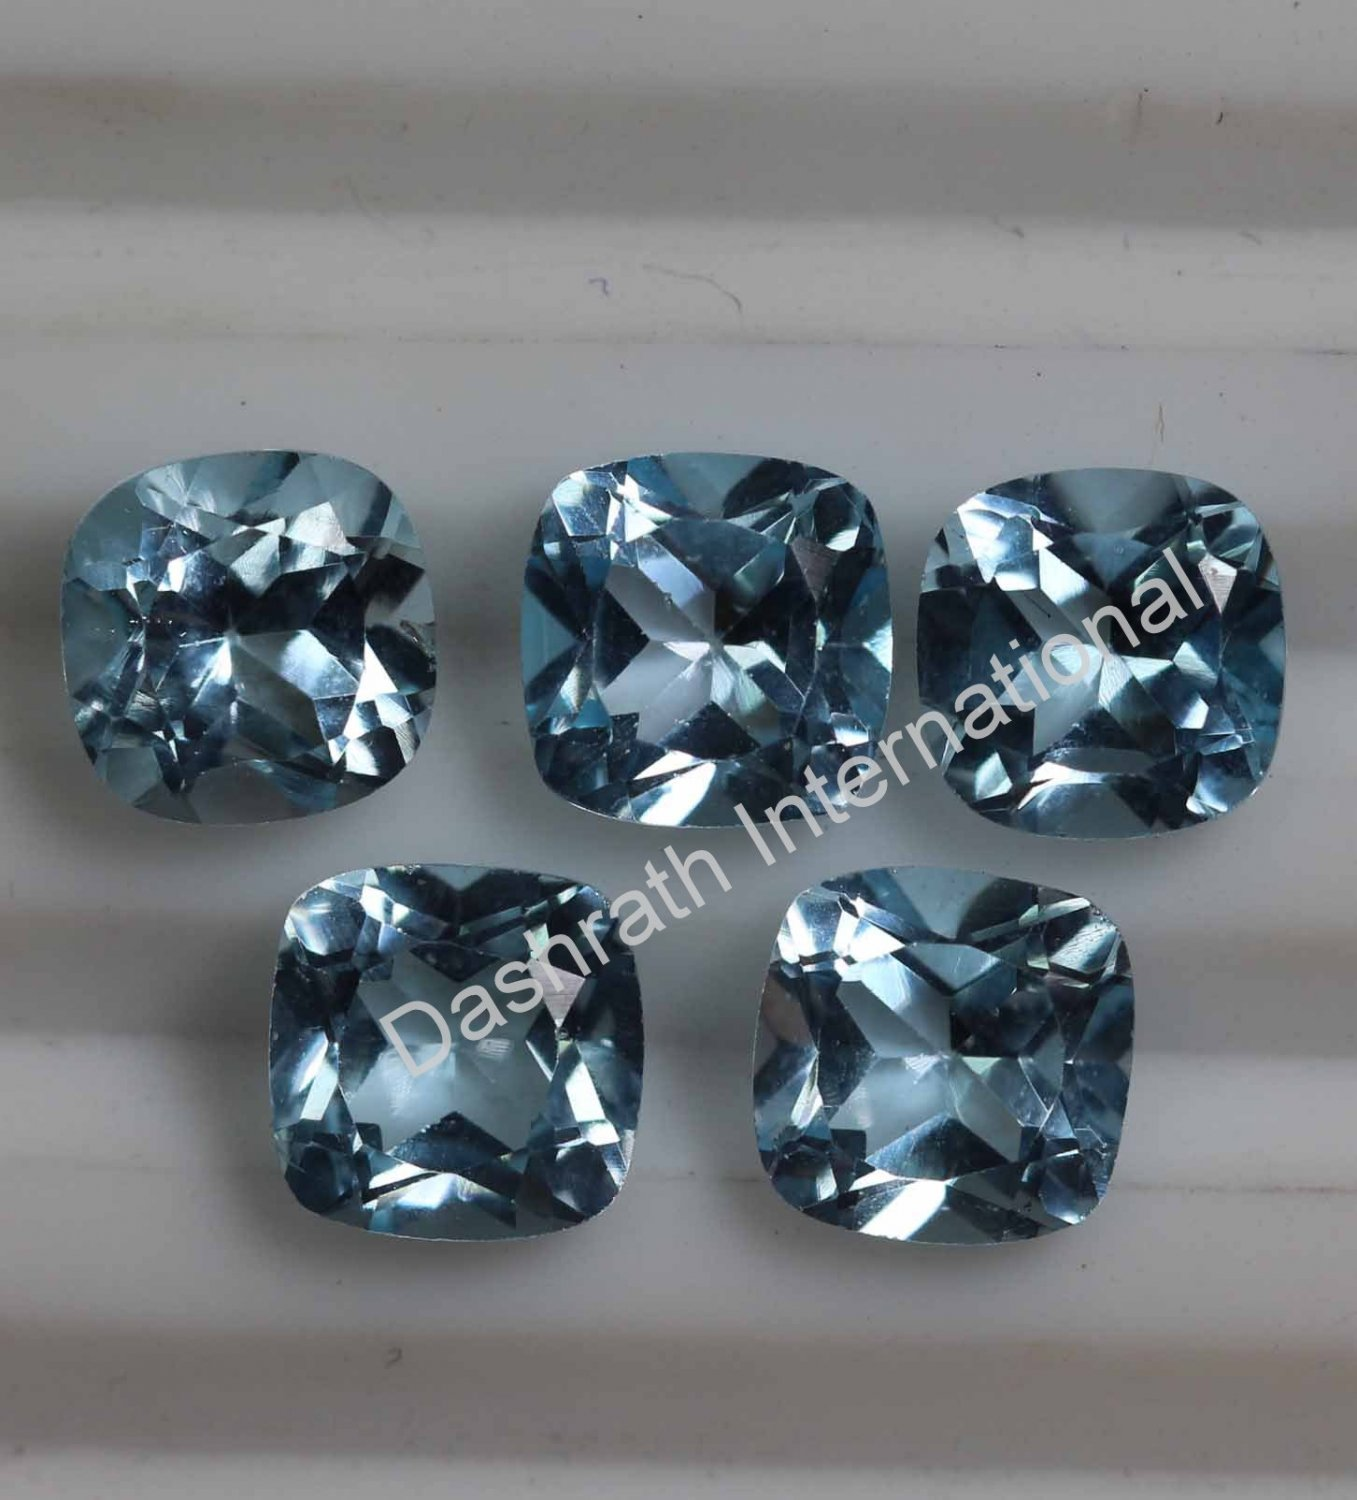 8mm Natural Sky Blue Topaz Faceted Cut Cushion 10 Pieces Lot Top Quality Loose Gemstone